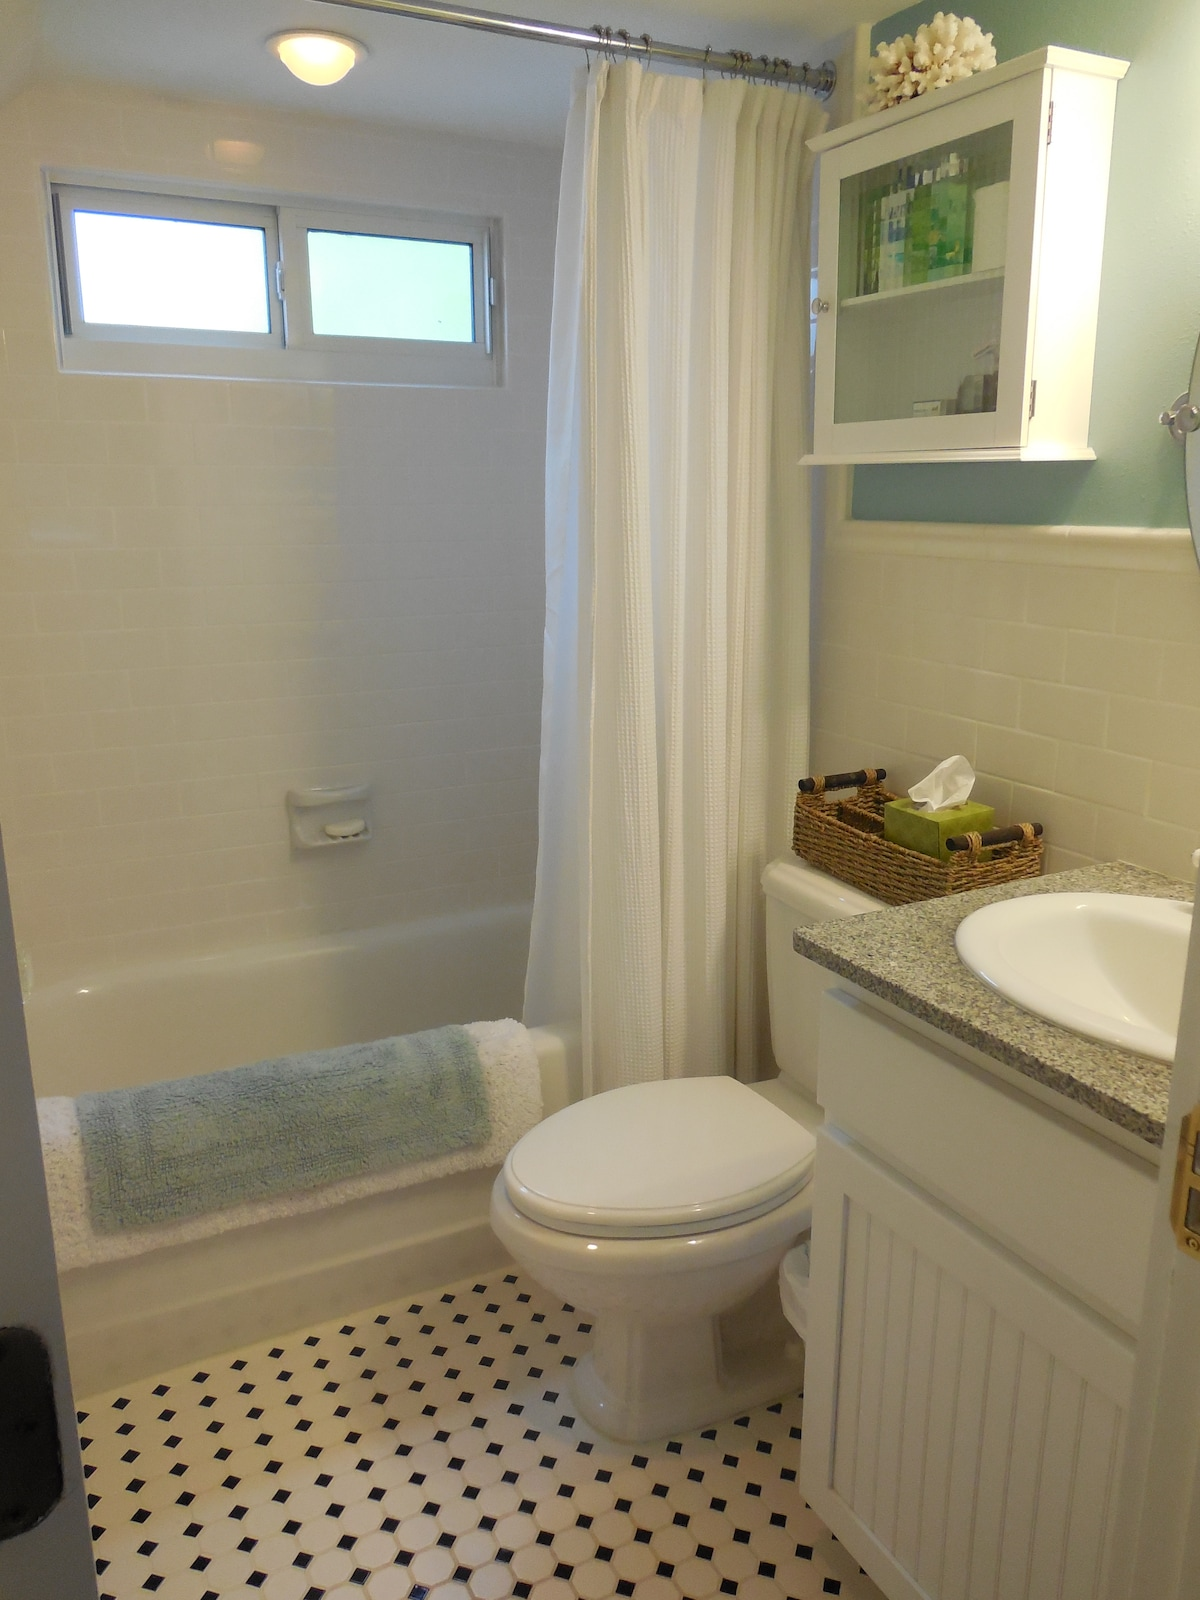 The first floor bathroom with tub / shower combination.